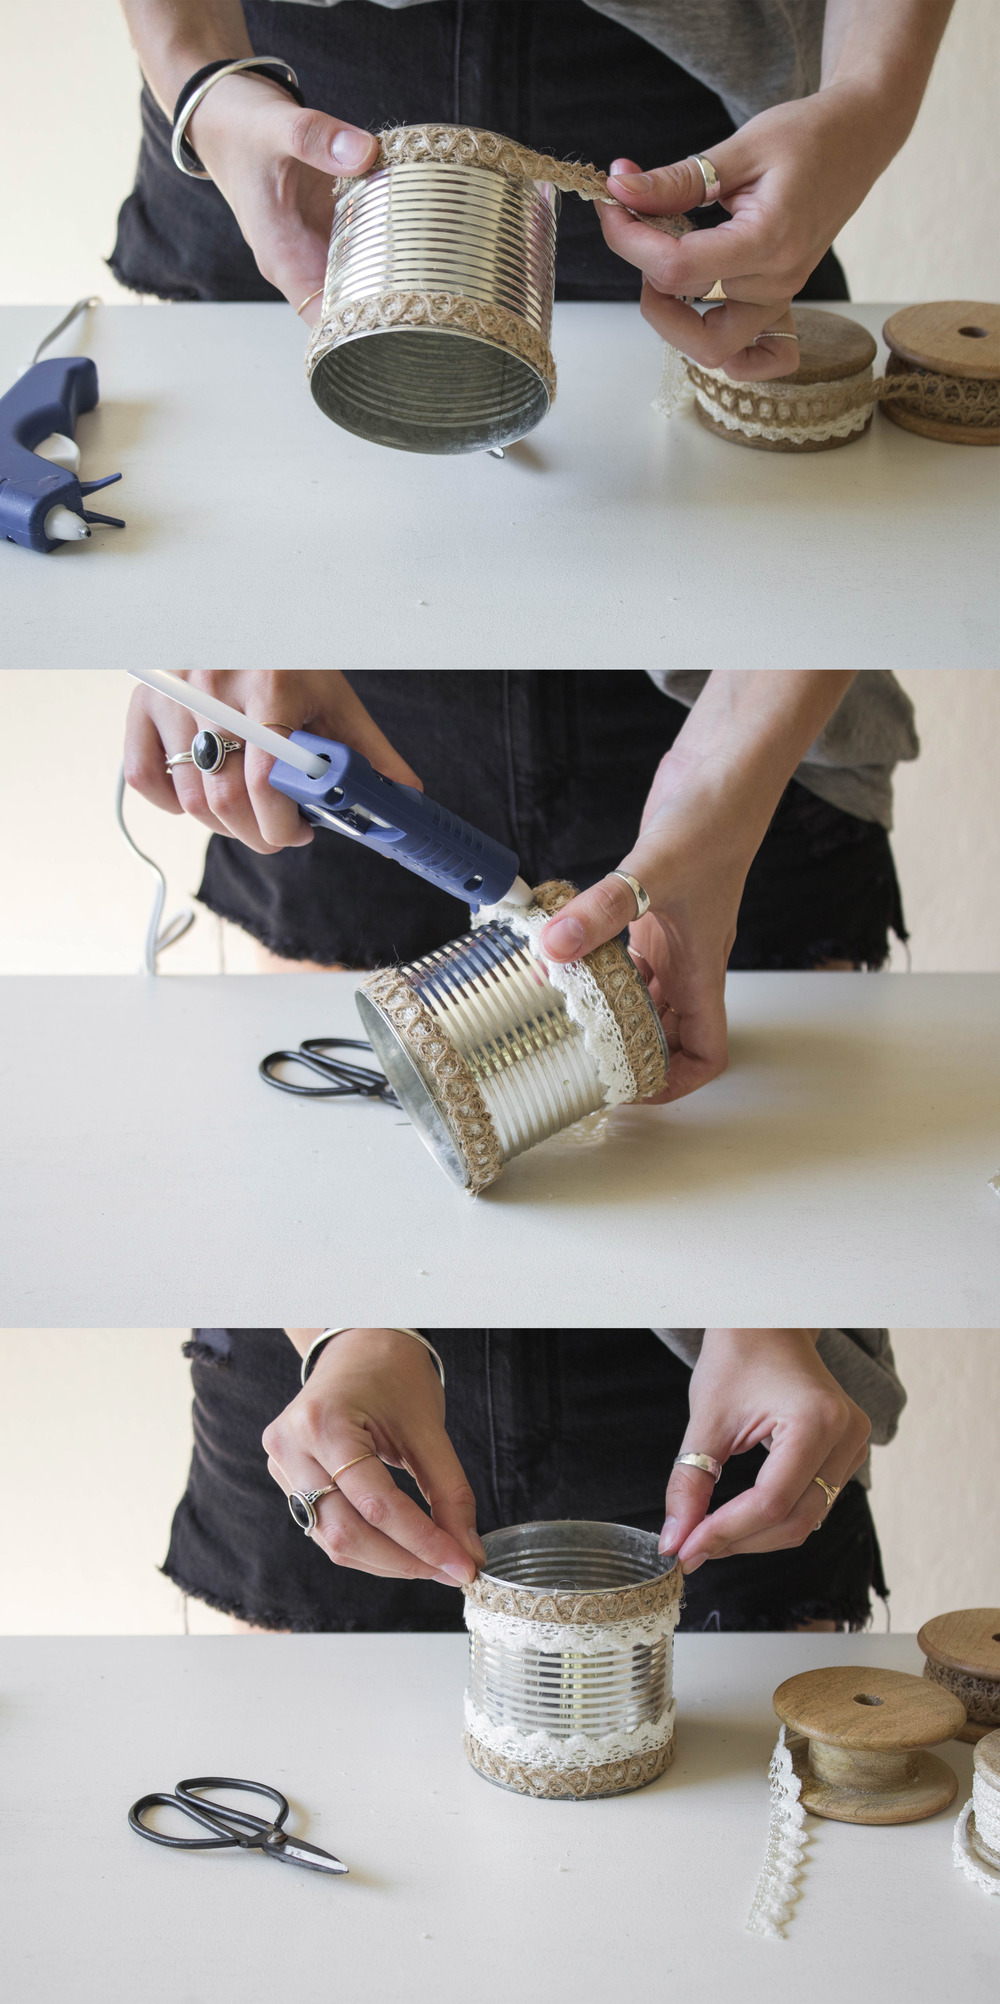 diy tin pencil holder 2.jpg